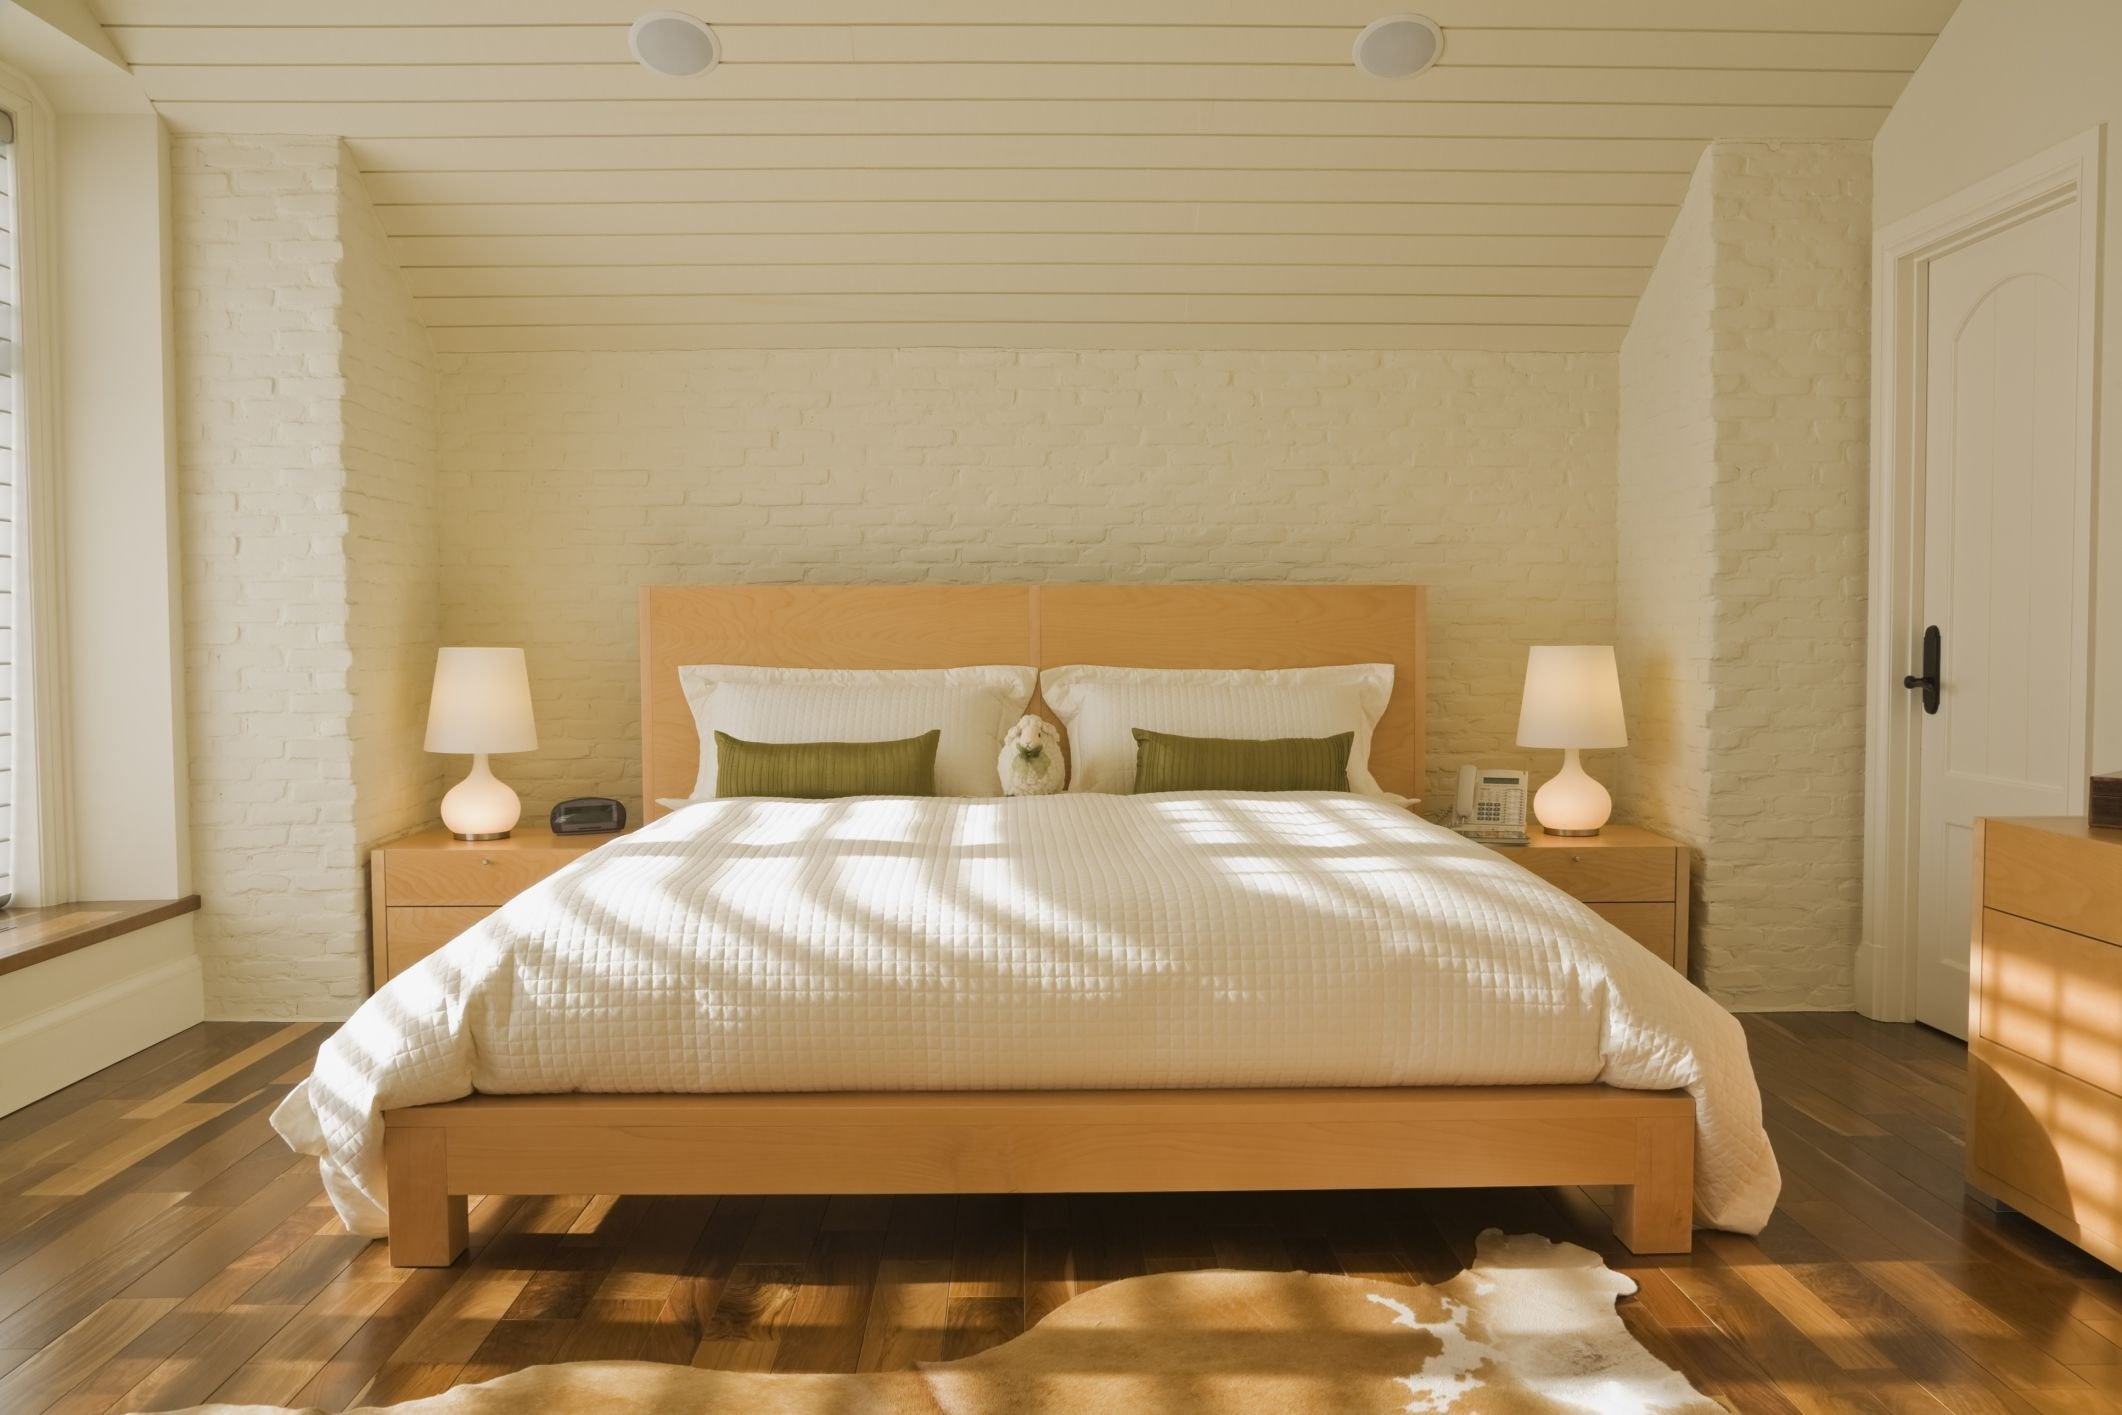 Best The Ideal Bedroom According To Feng Shui With Pictures